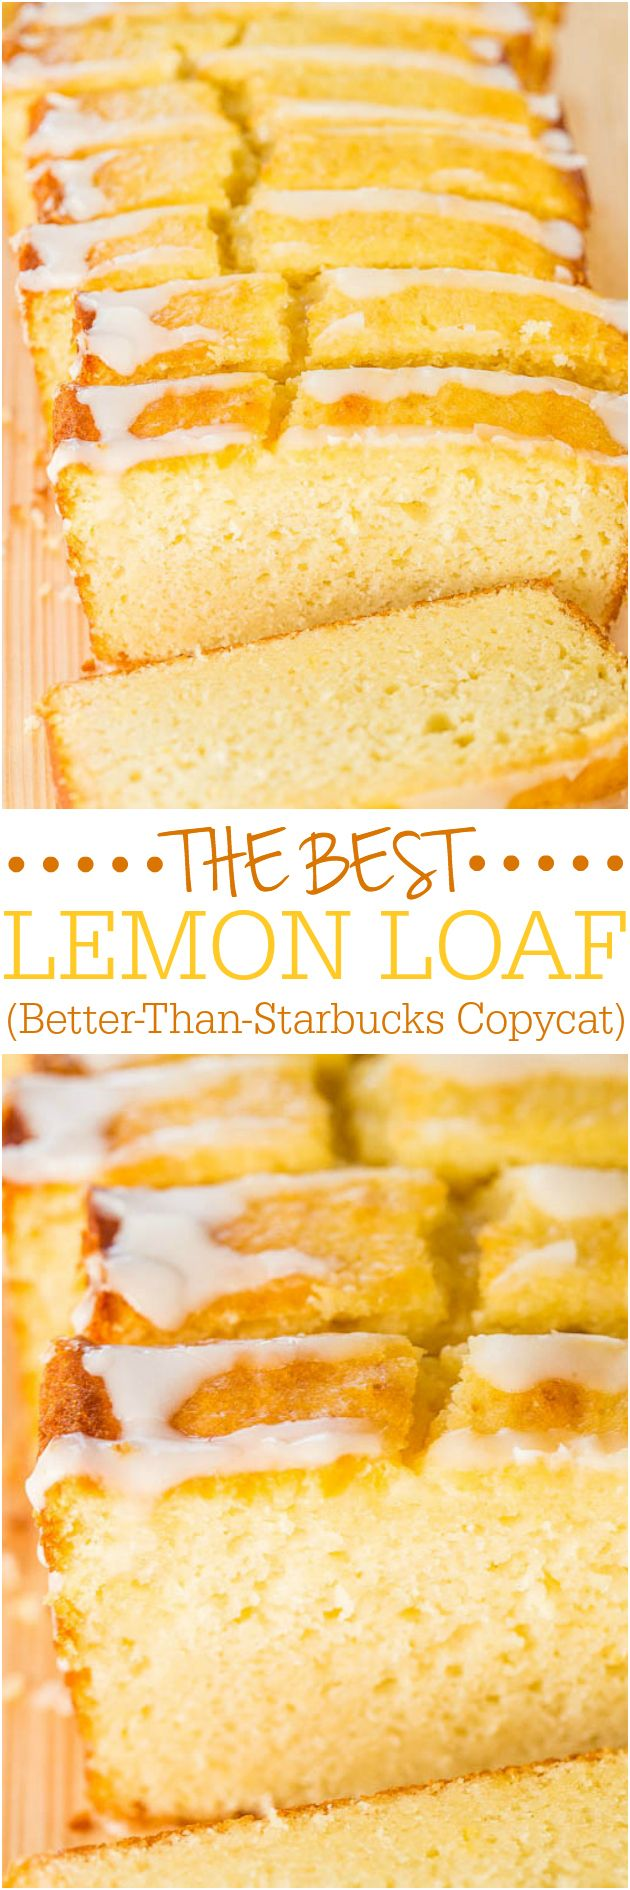 The Best Lemon Loaf (Better-Than-Starbucks Copycat) - Took years but I finally recreated it! Easy, no mixer, no cake mix, dangerously good!! Surprise Mom for #MothersDay #Brunch with this!